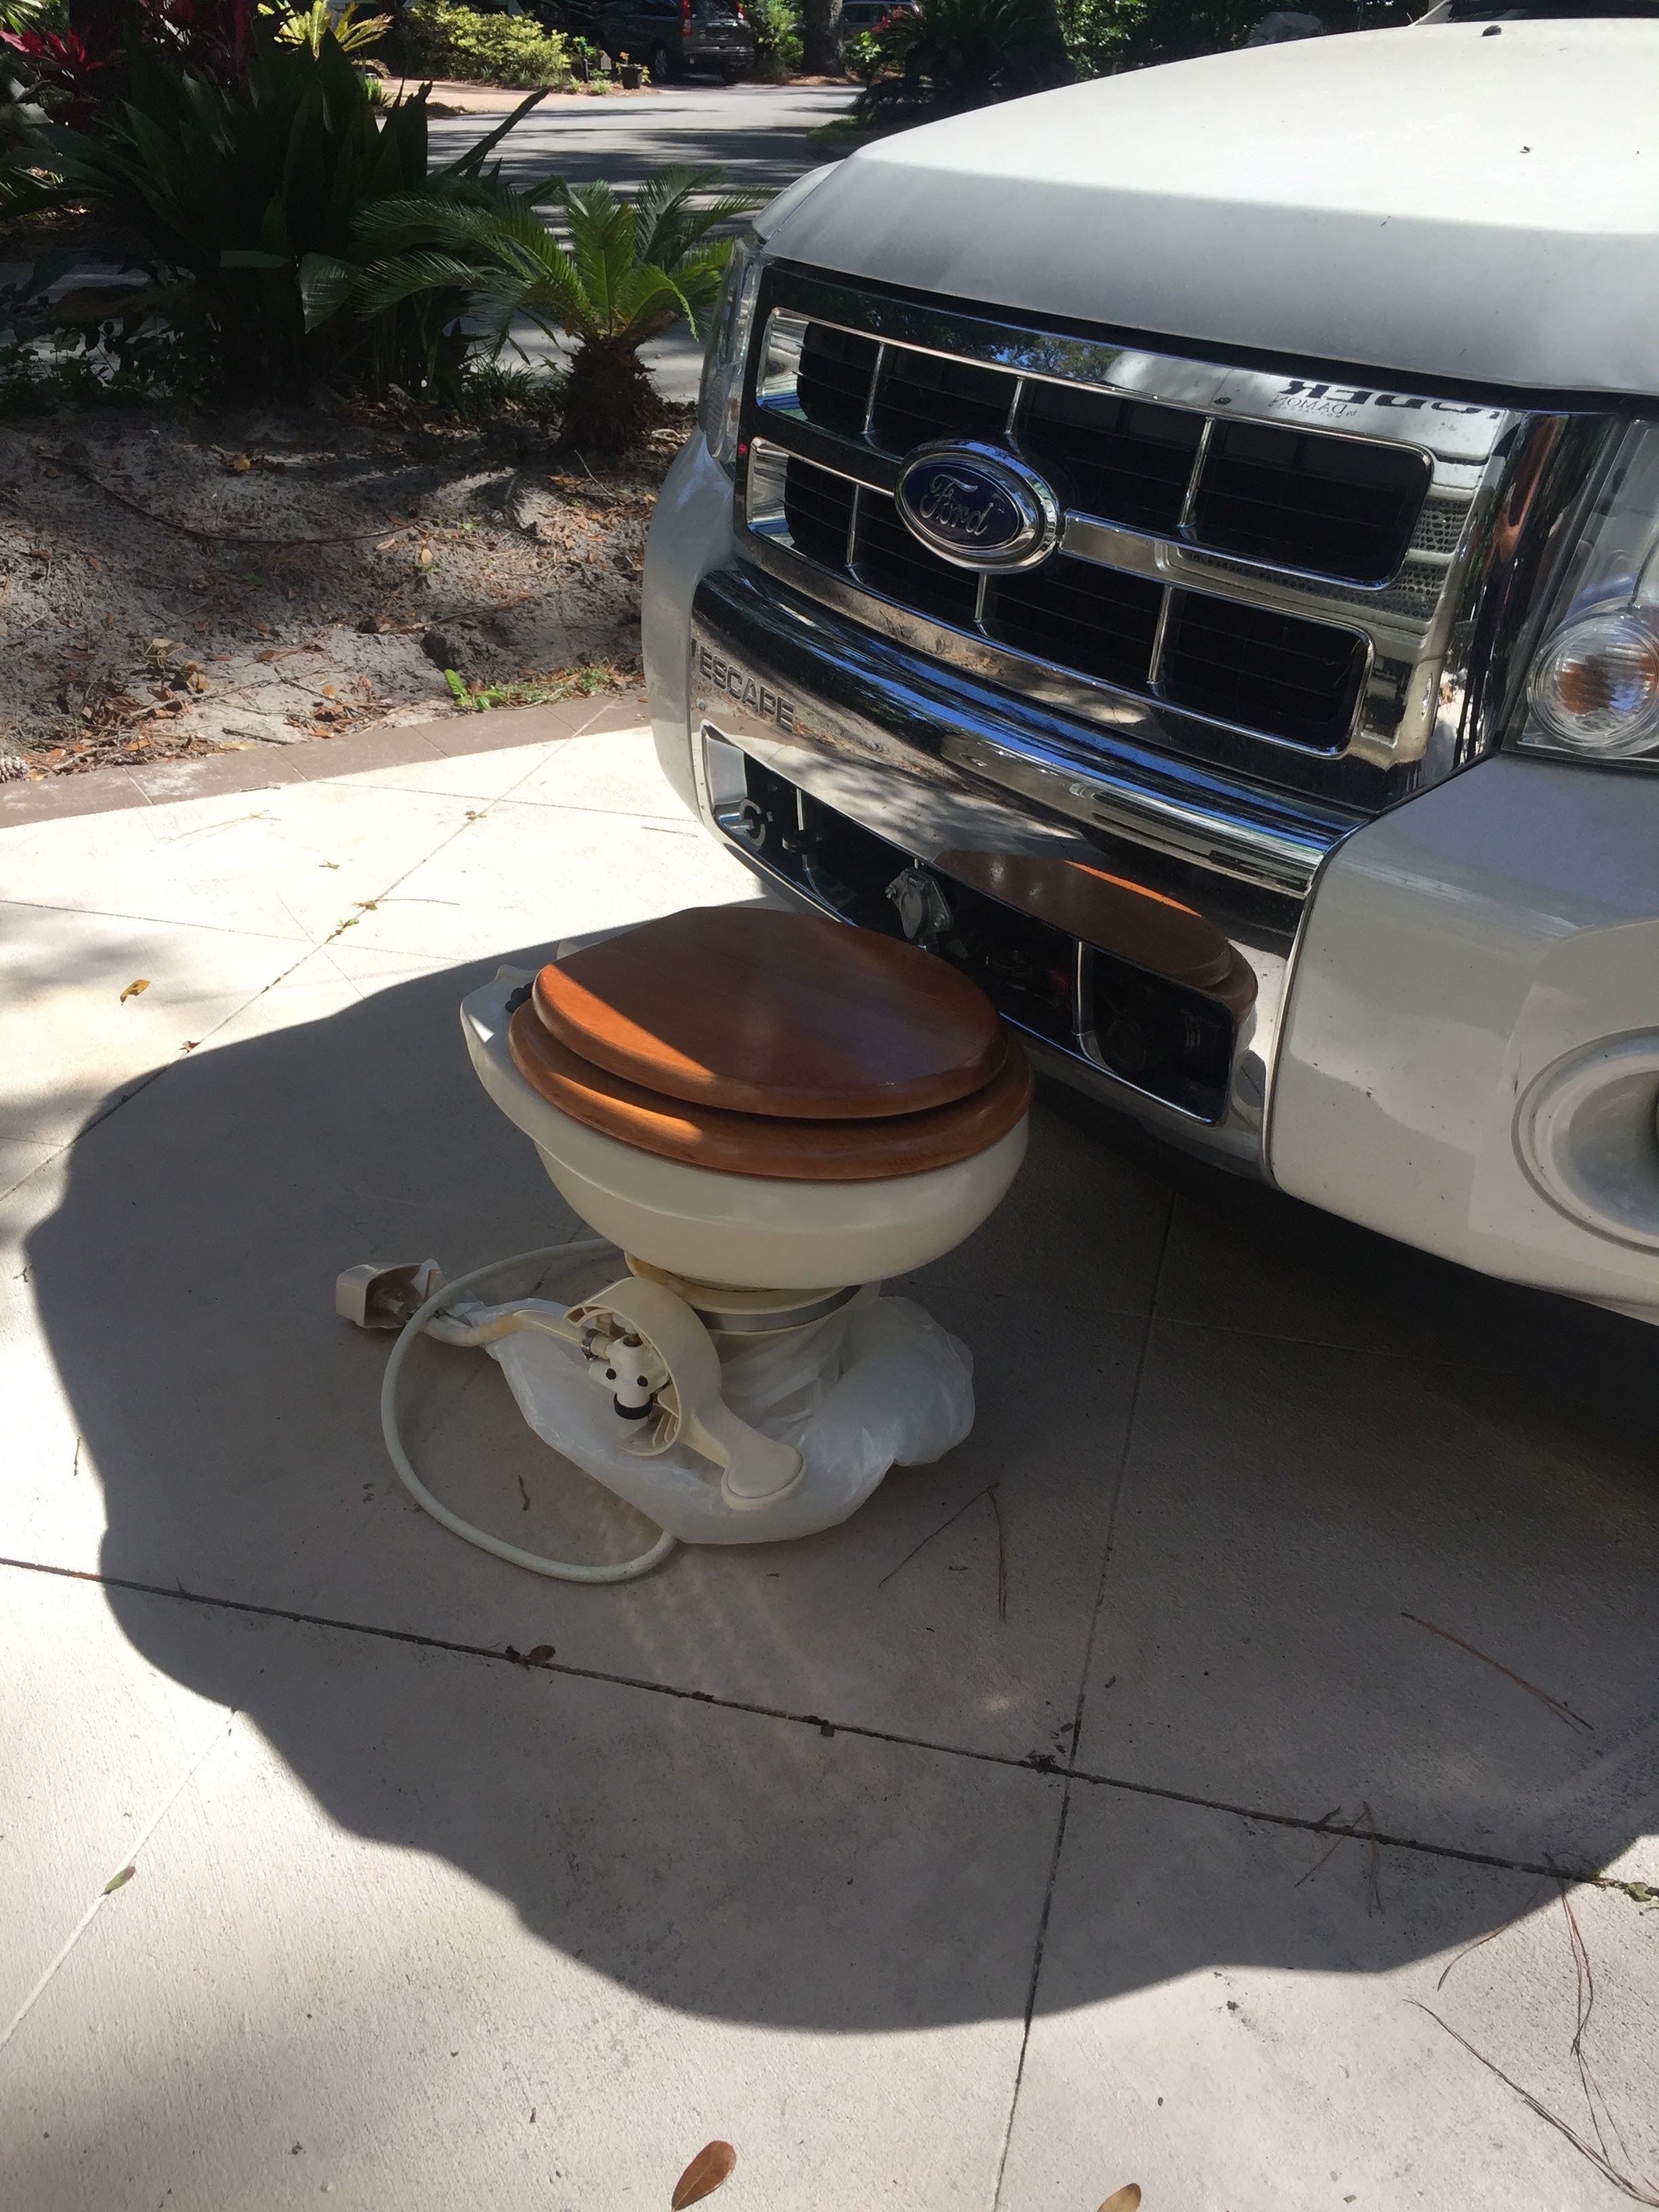 Toilet replacement while parked in Hilton Head. One of many fixes done on the road.